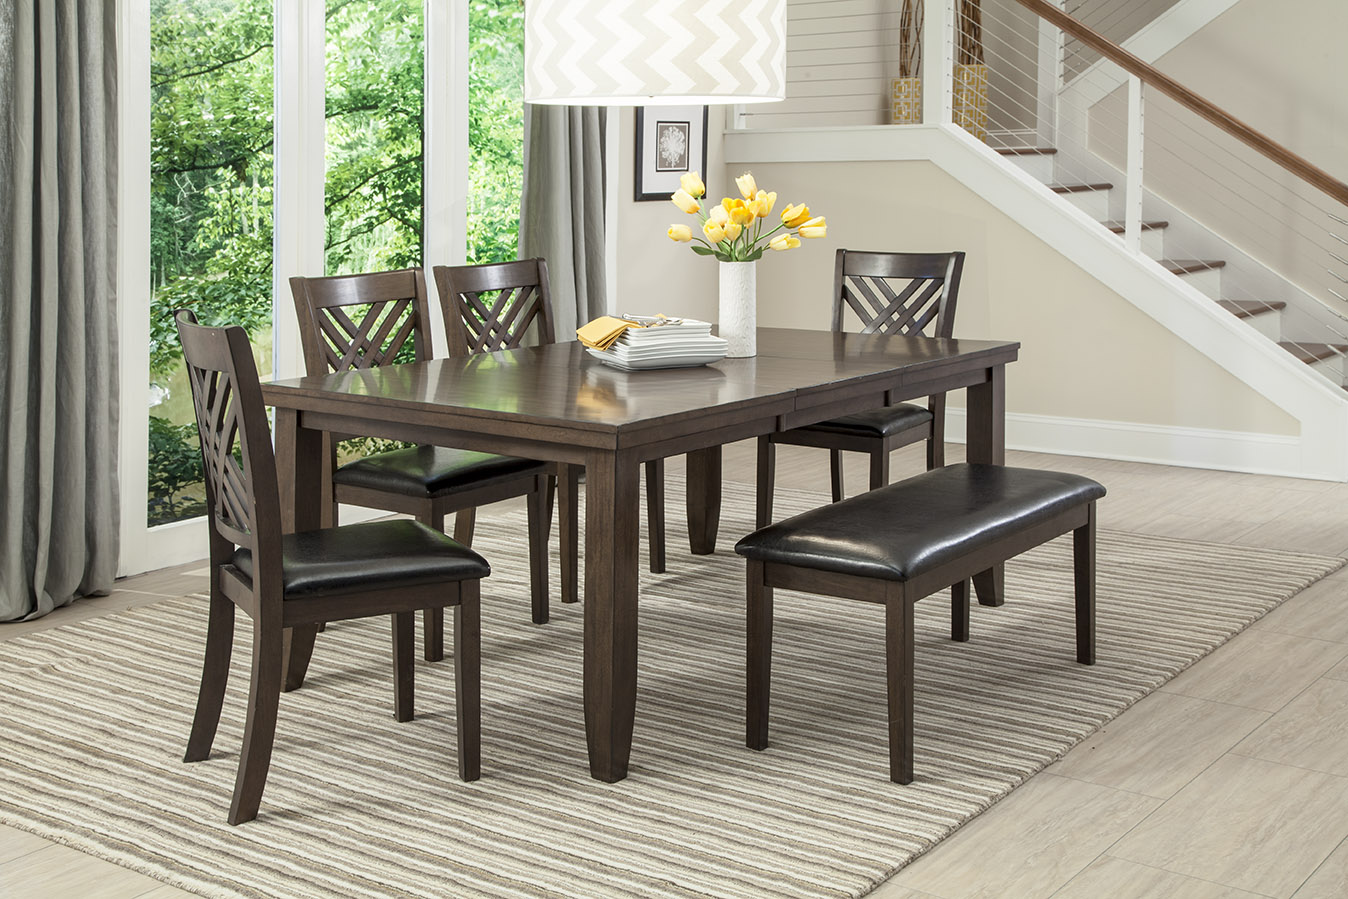 GL-4918 Dynamite Dining Table